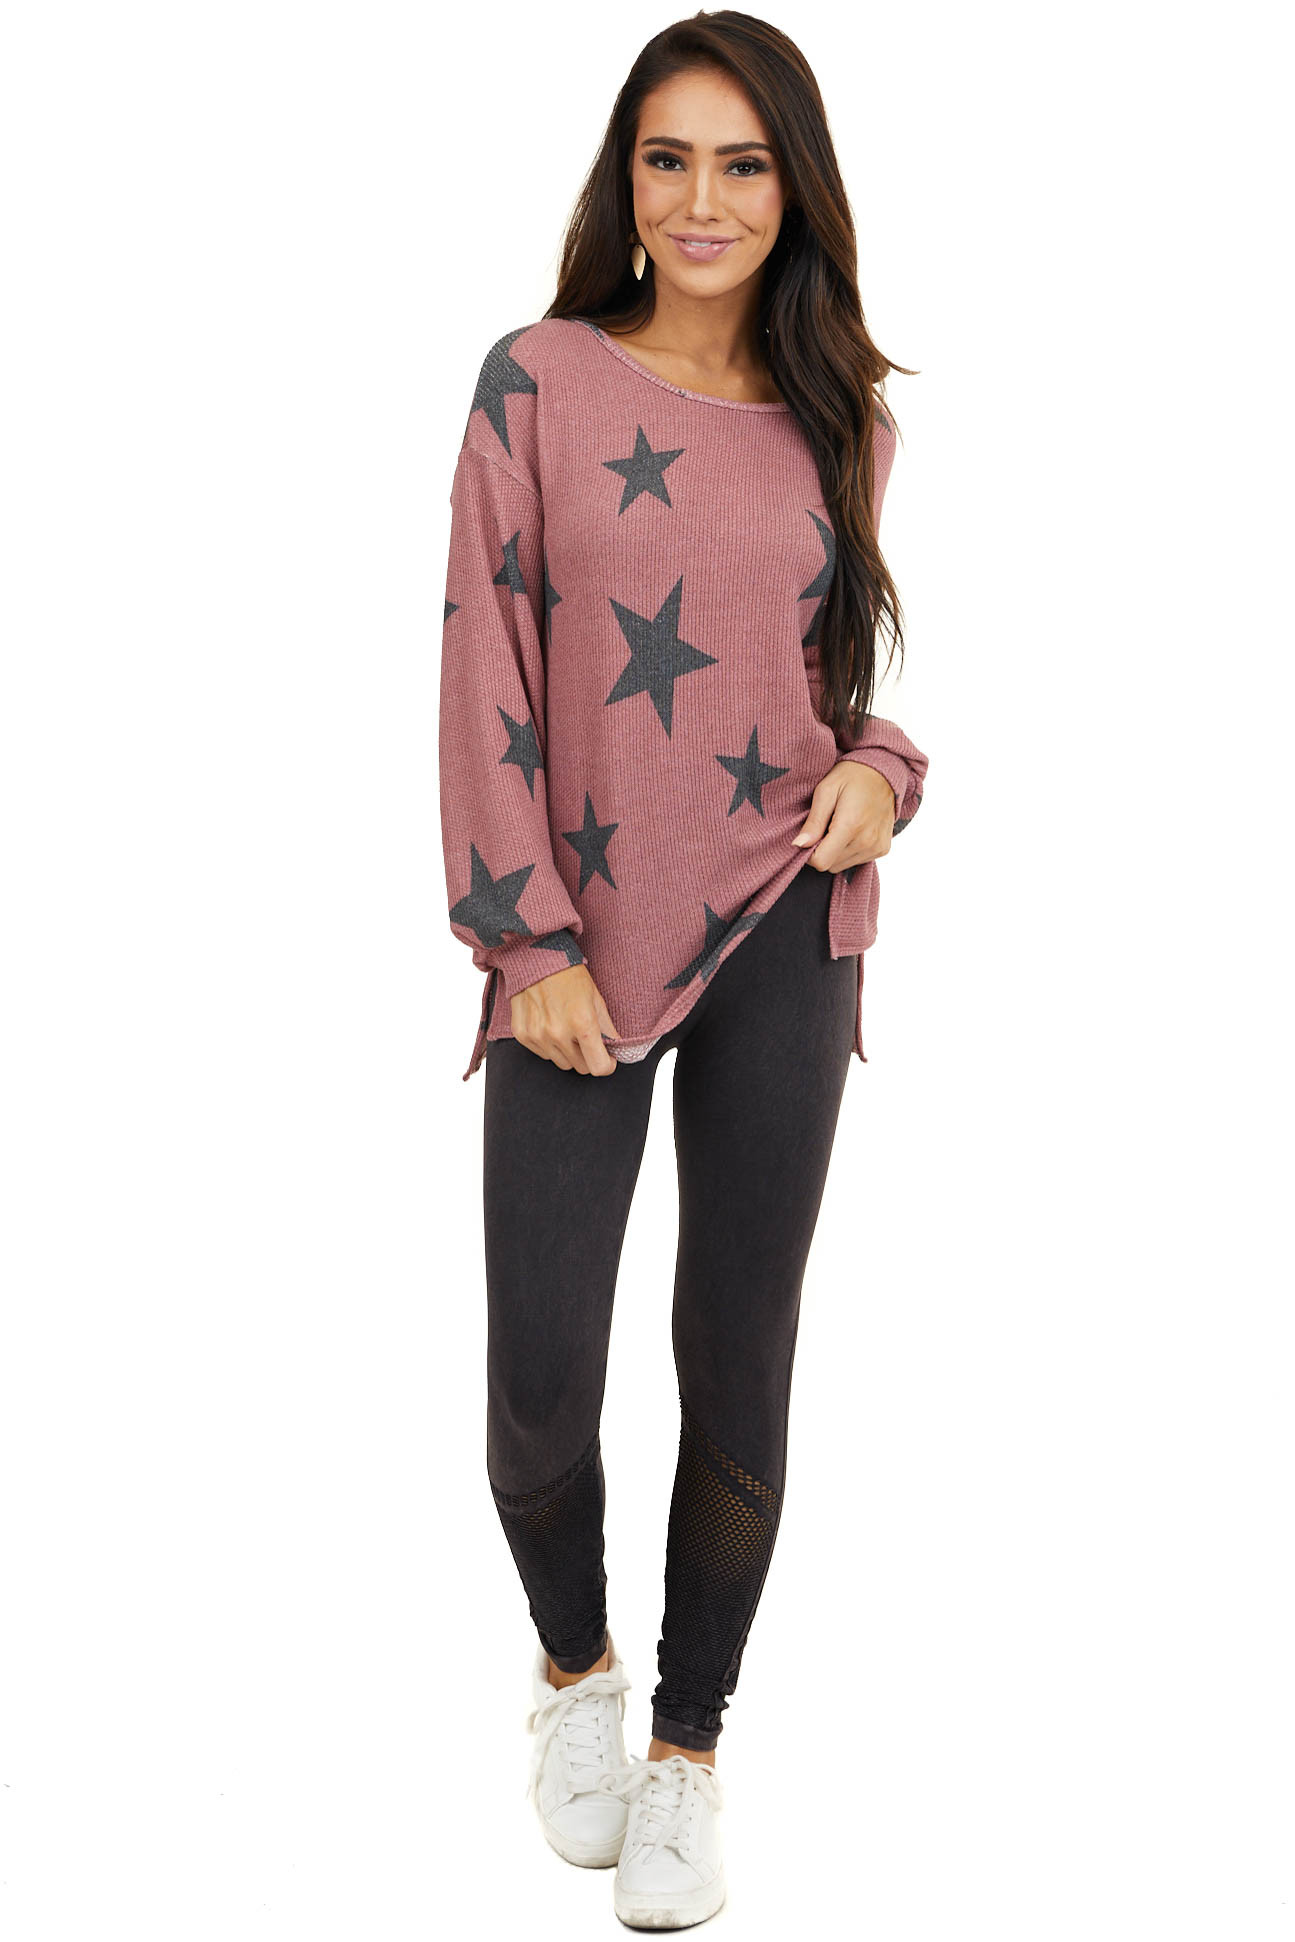 Dusty Mulberry Star Print Textured Top with Criss Cross Back